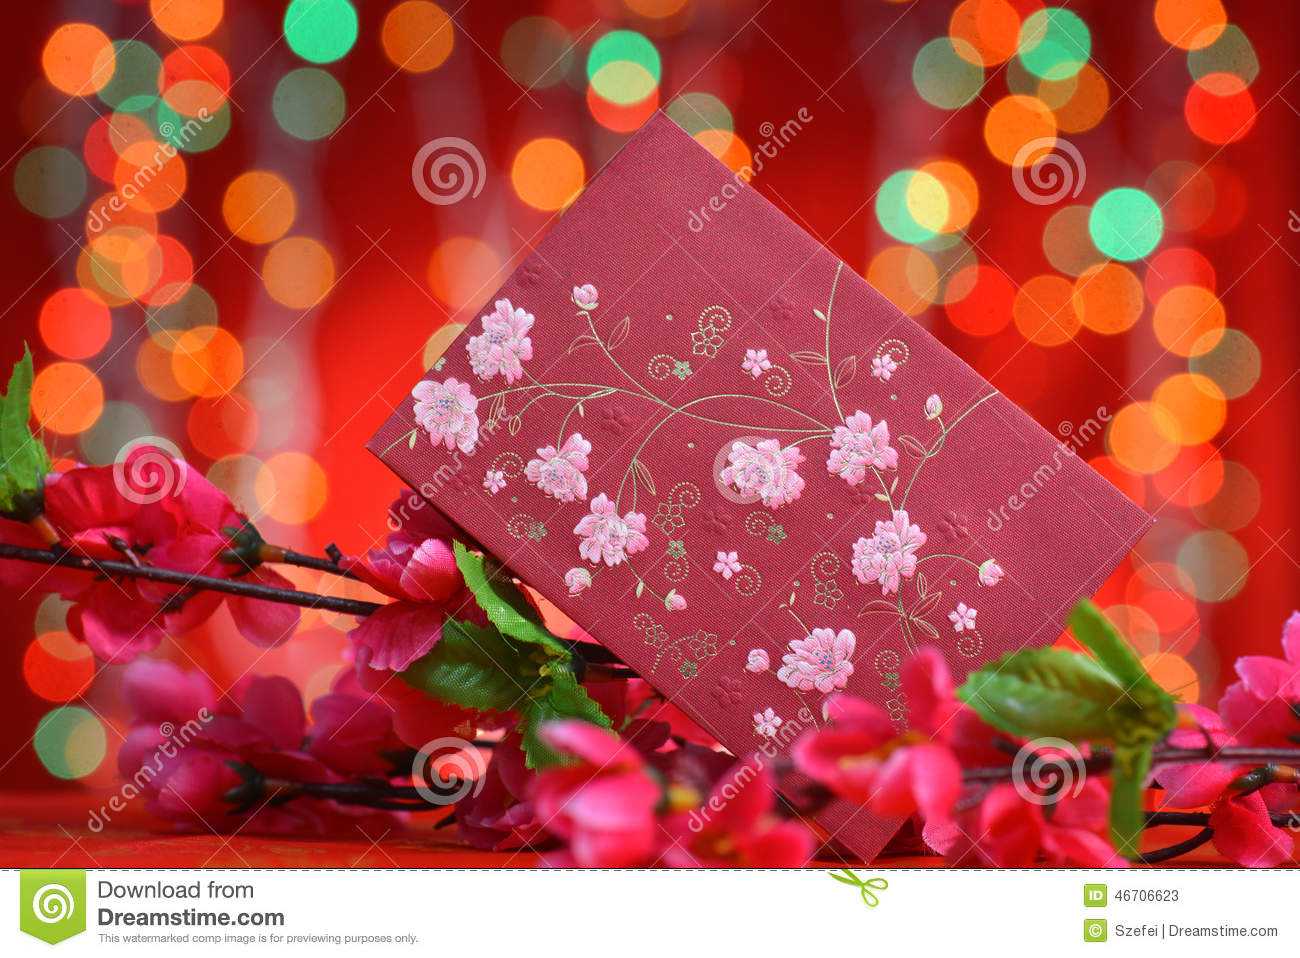 Chinese new year ang pow stock photo image 46706623 for Ang pow packet decoration